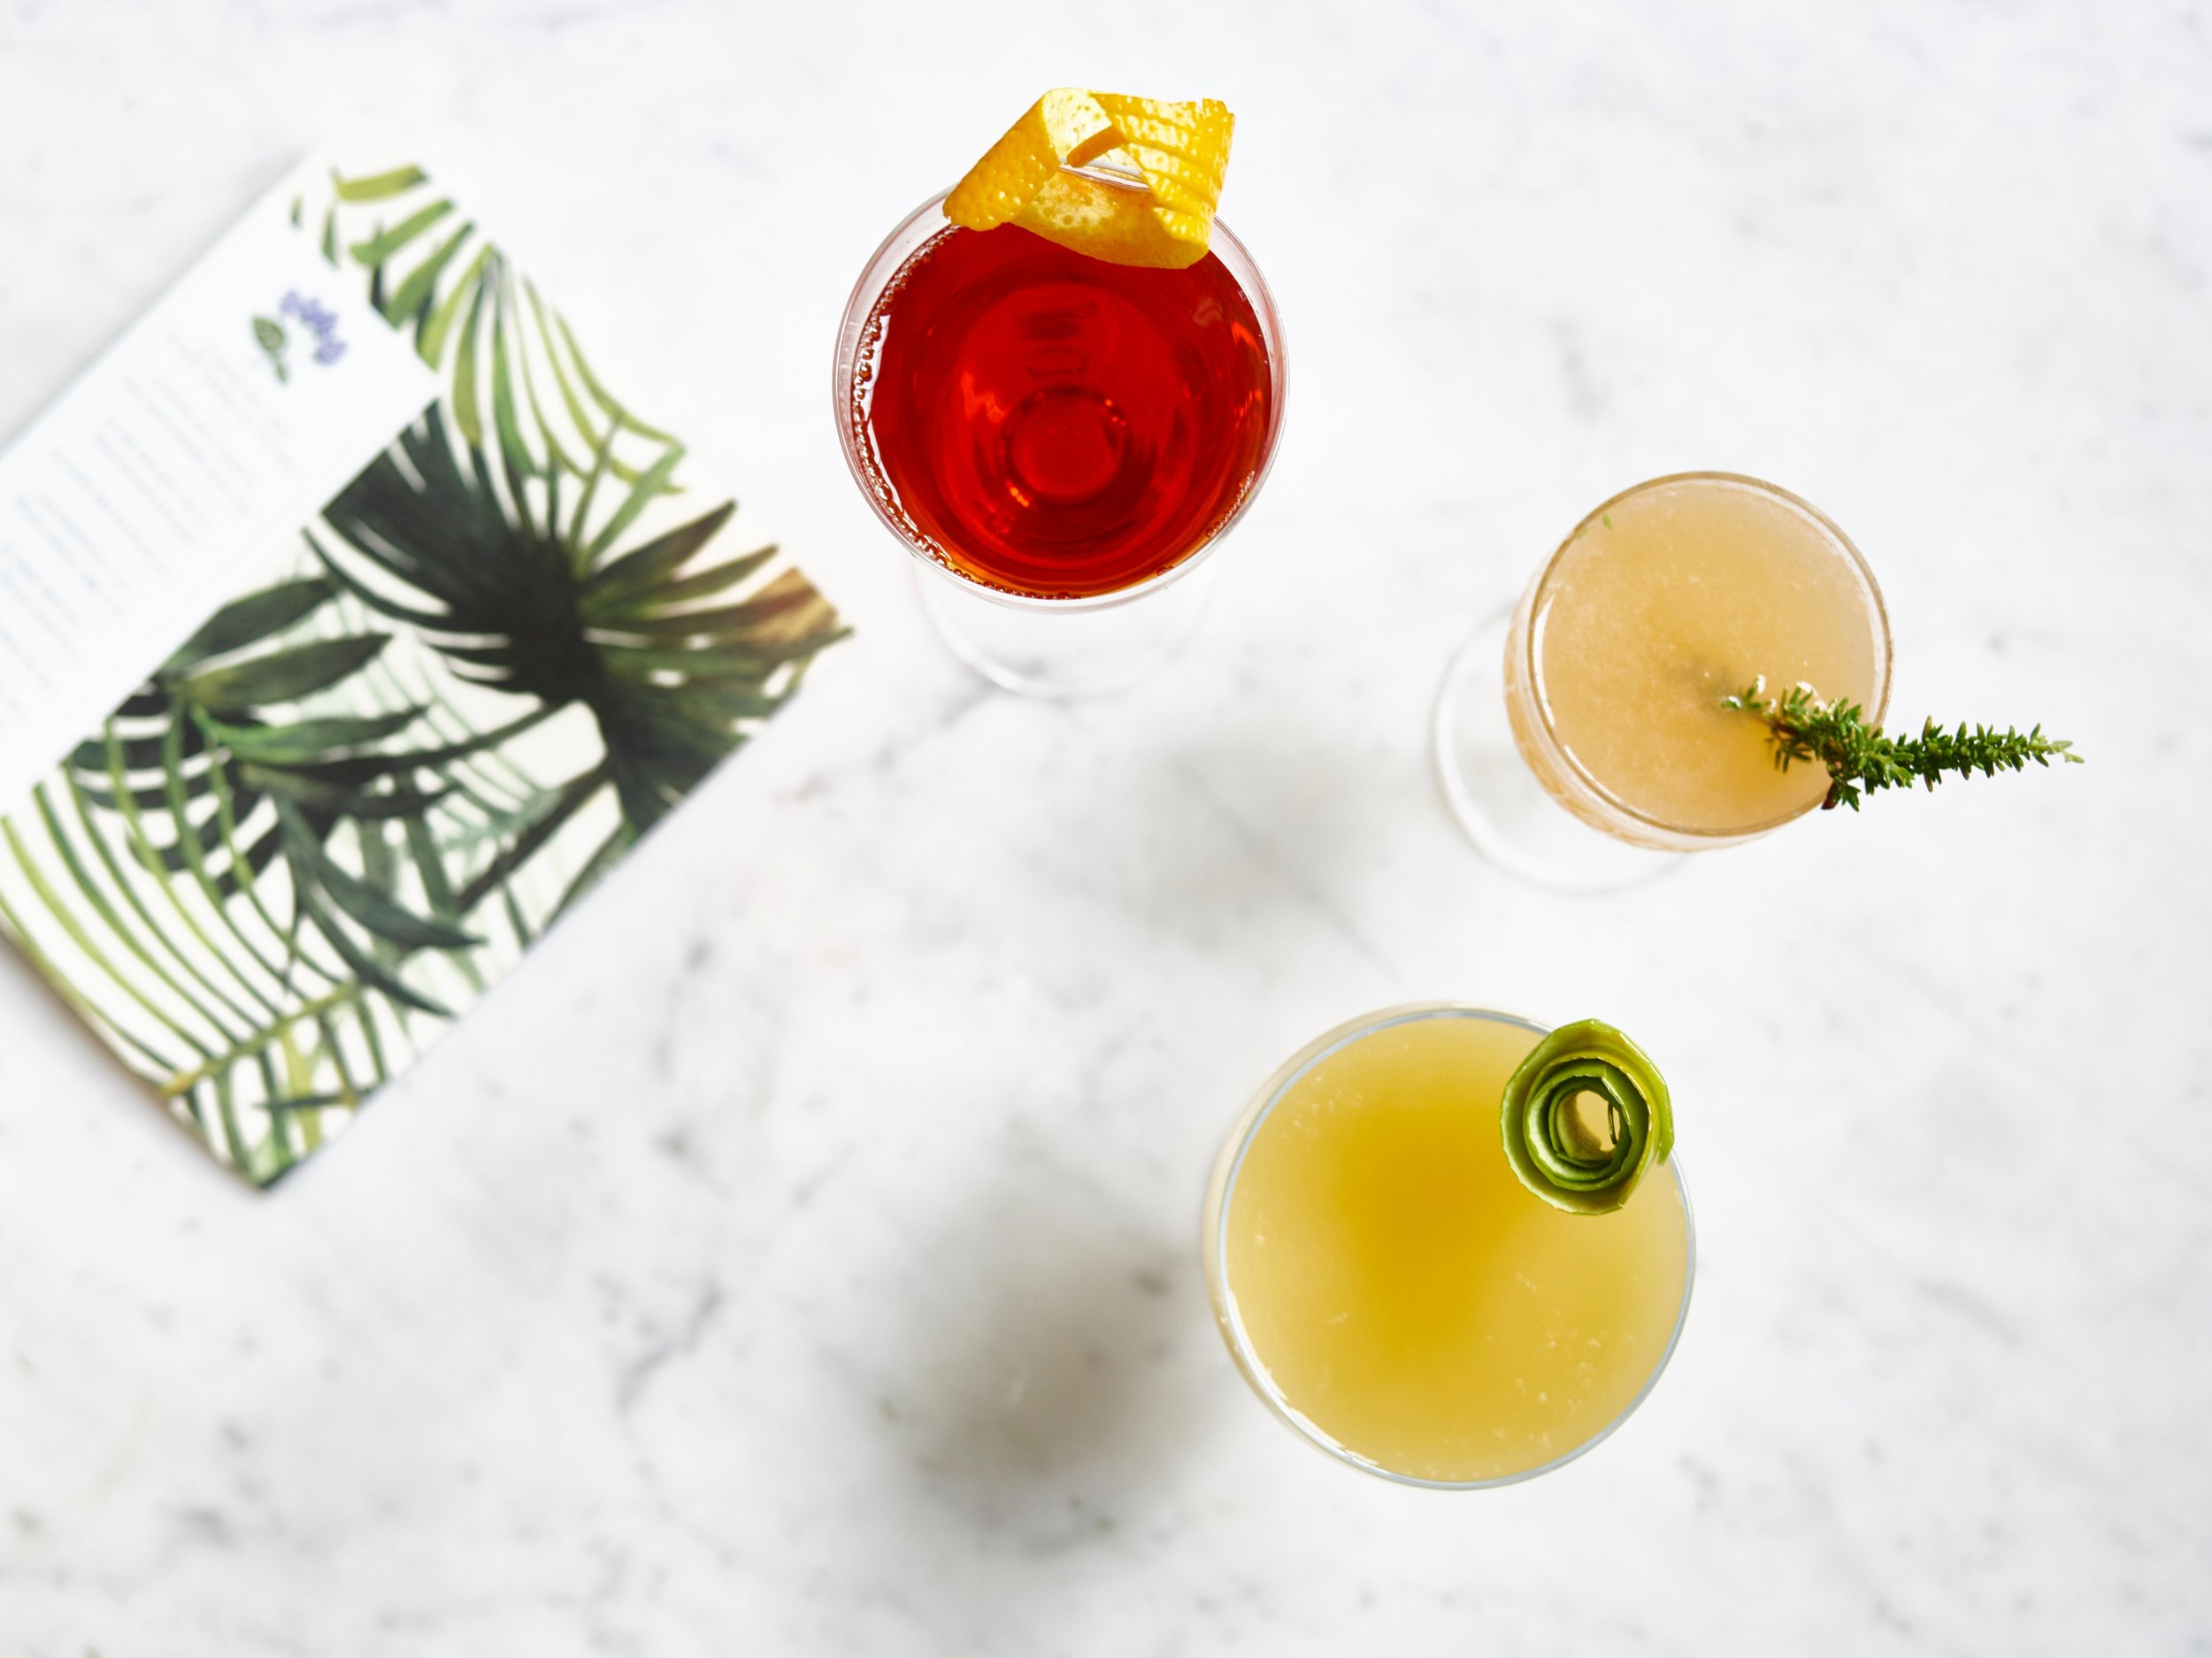 Creative cocktail bars in the west end, creative cocktail creation in London